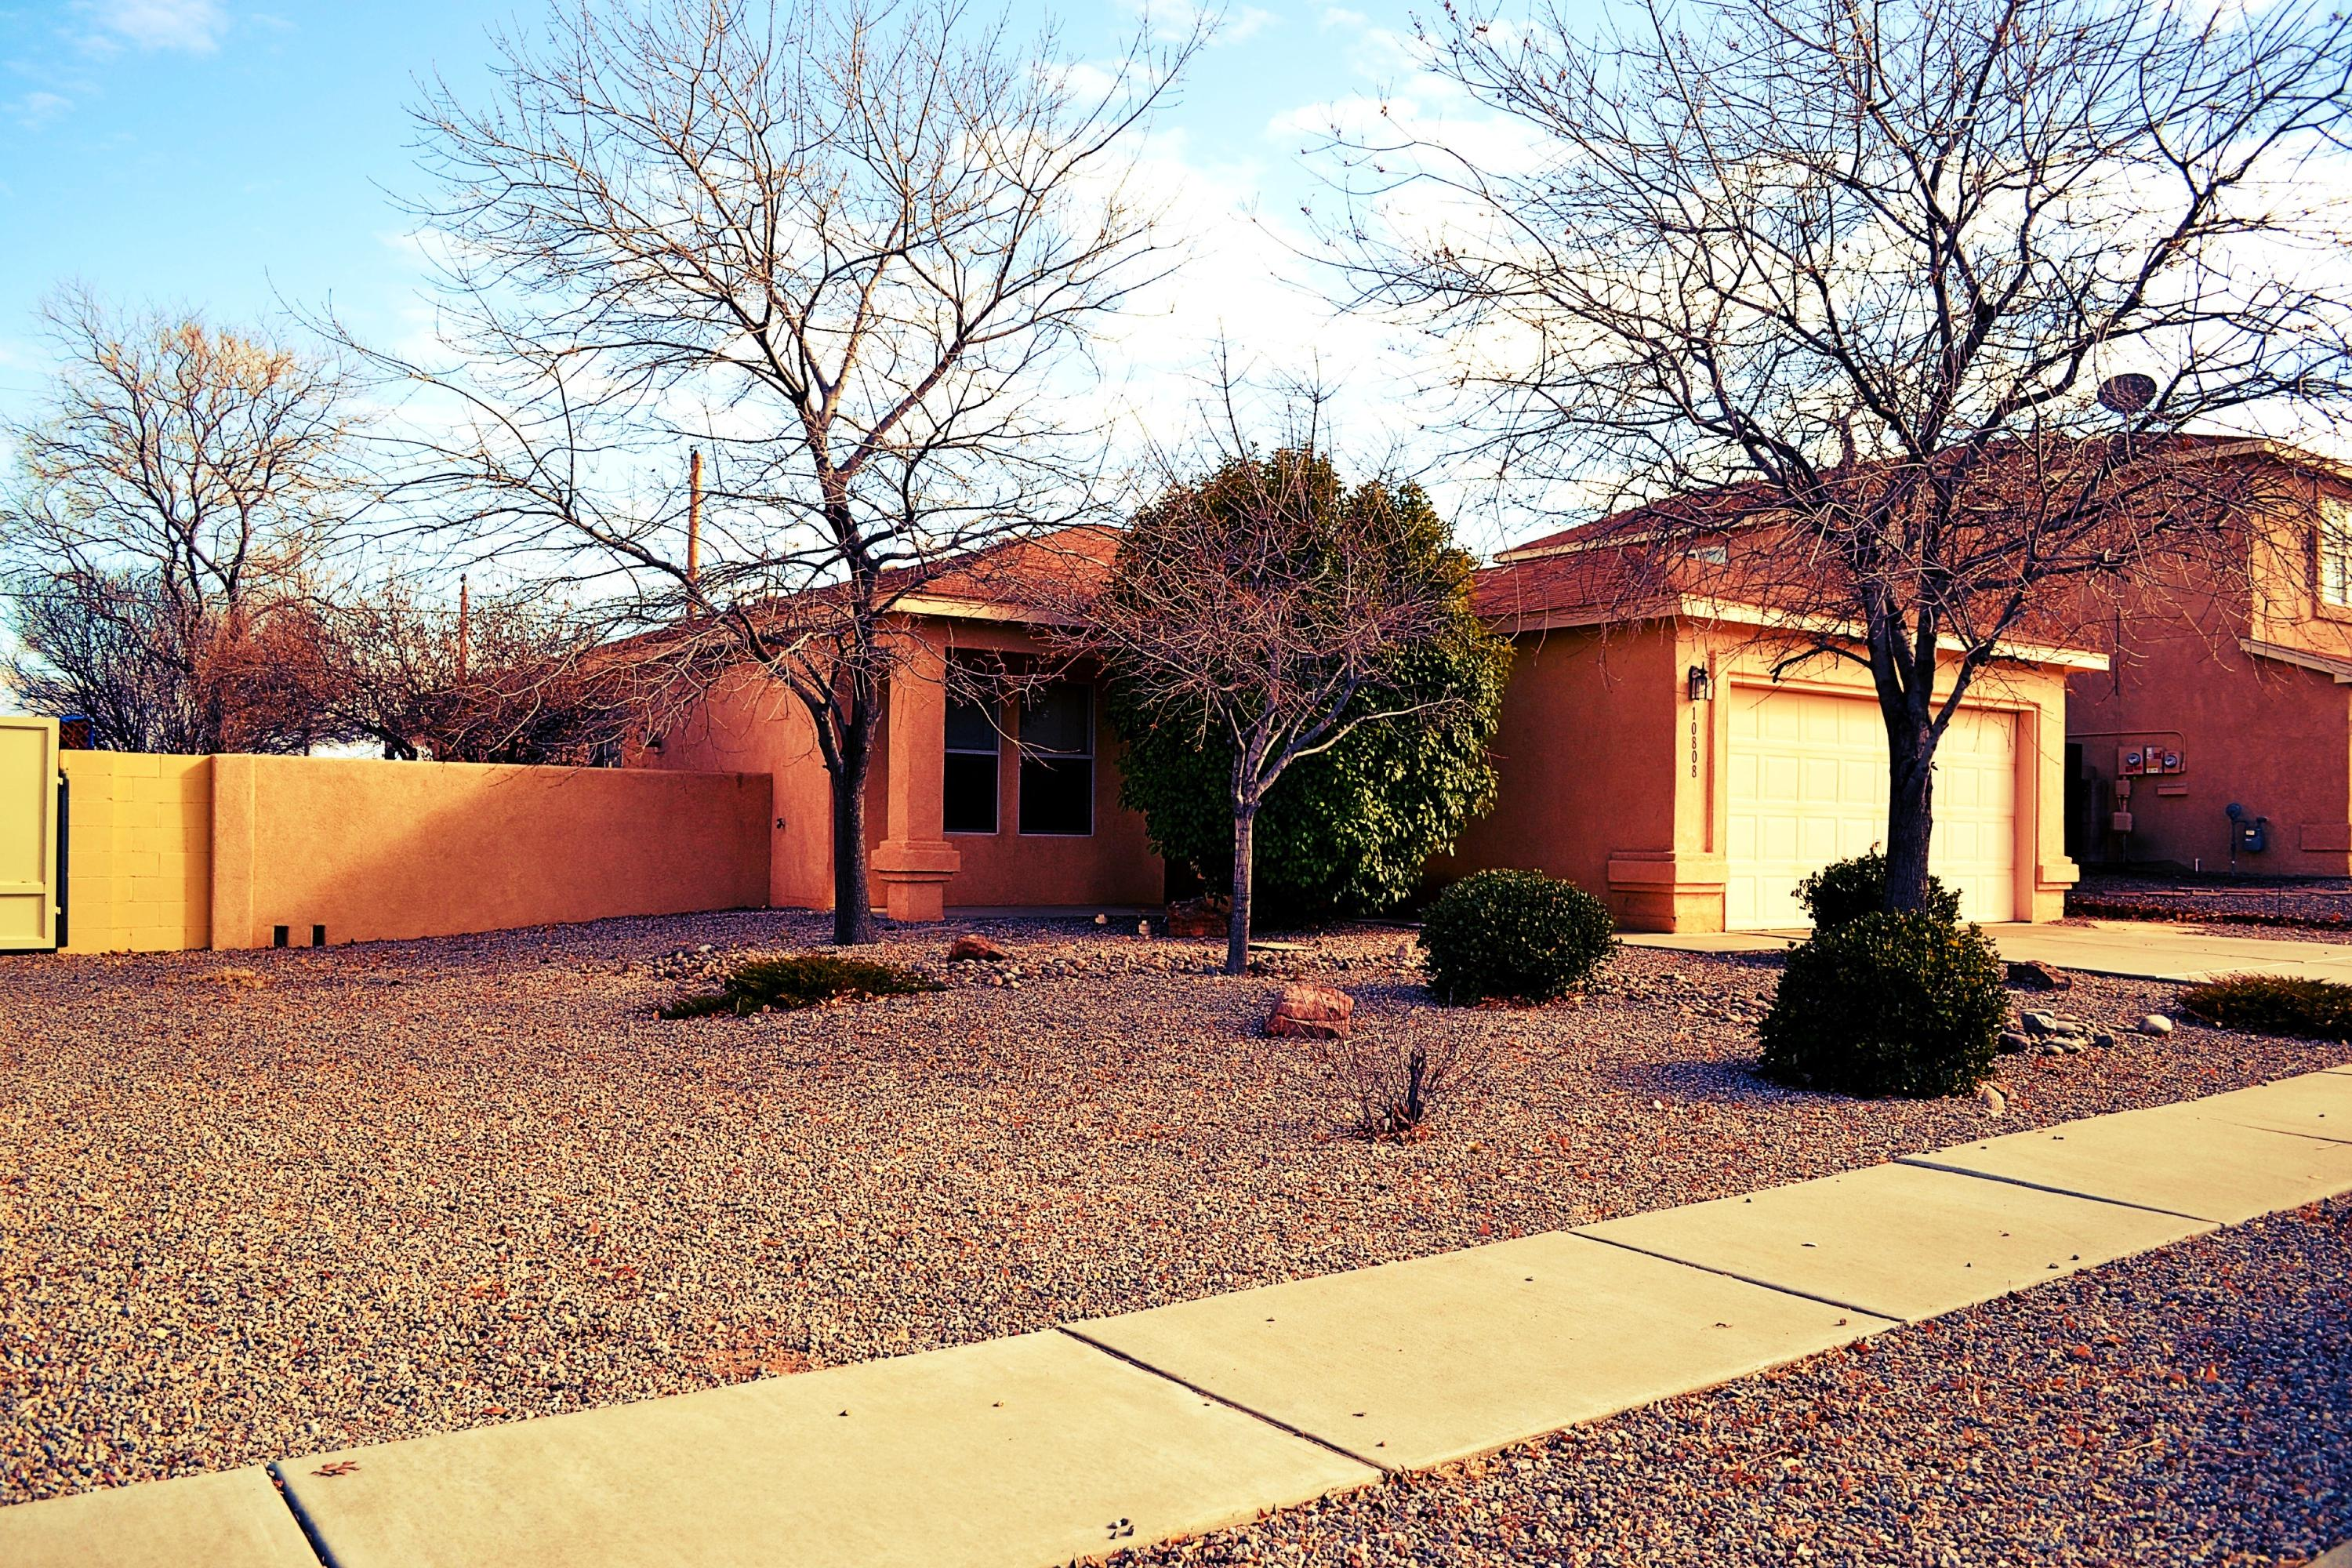 Well maintained home with a mountain view and xeriscape landscaping. Community pool! Custom window coverings throughout, all appliances convey. This open floorplan offers 3 bedrooms 2 full baths plus an office. Don't miss this one!